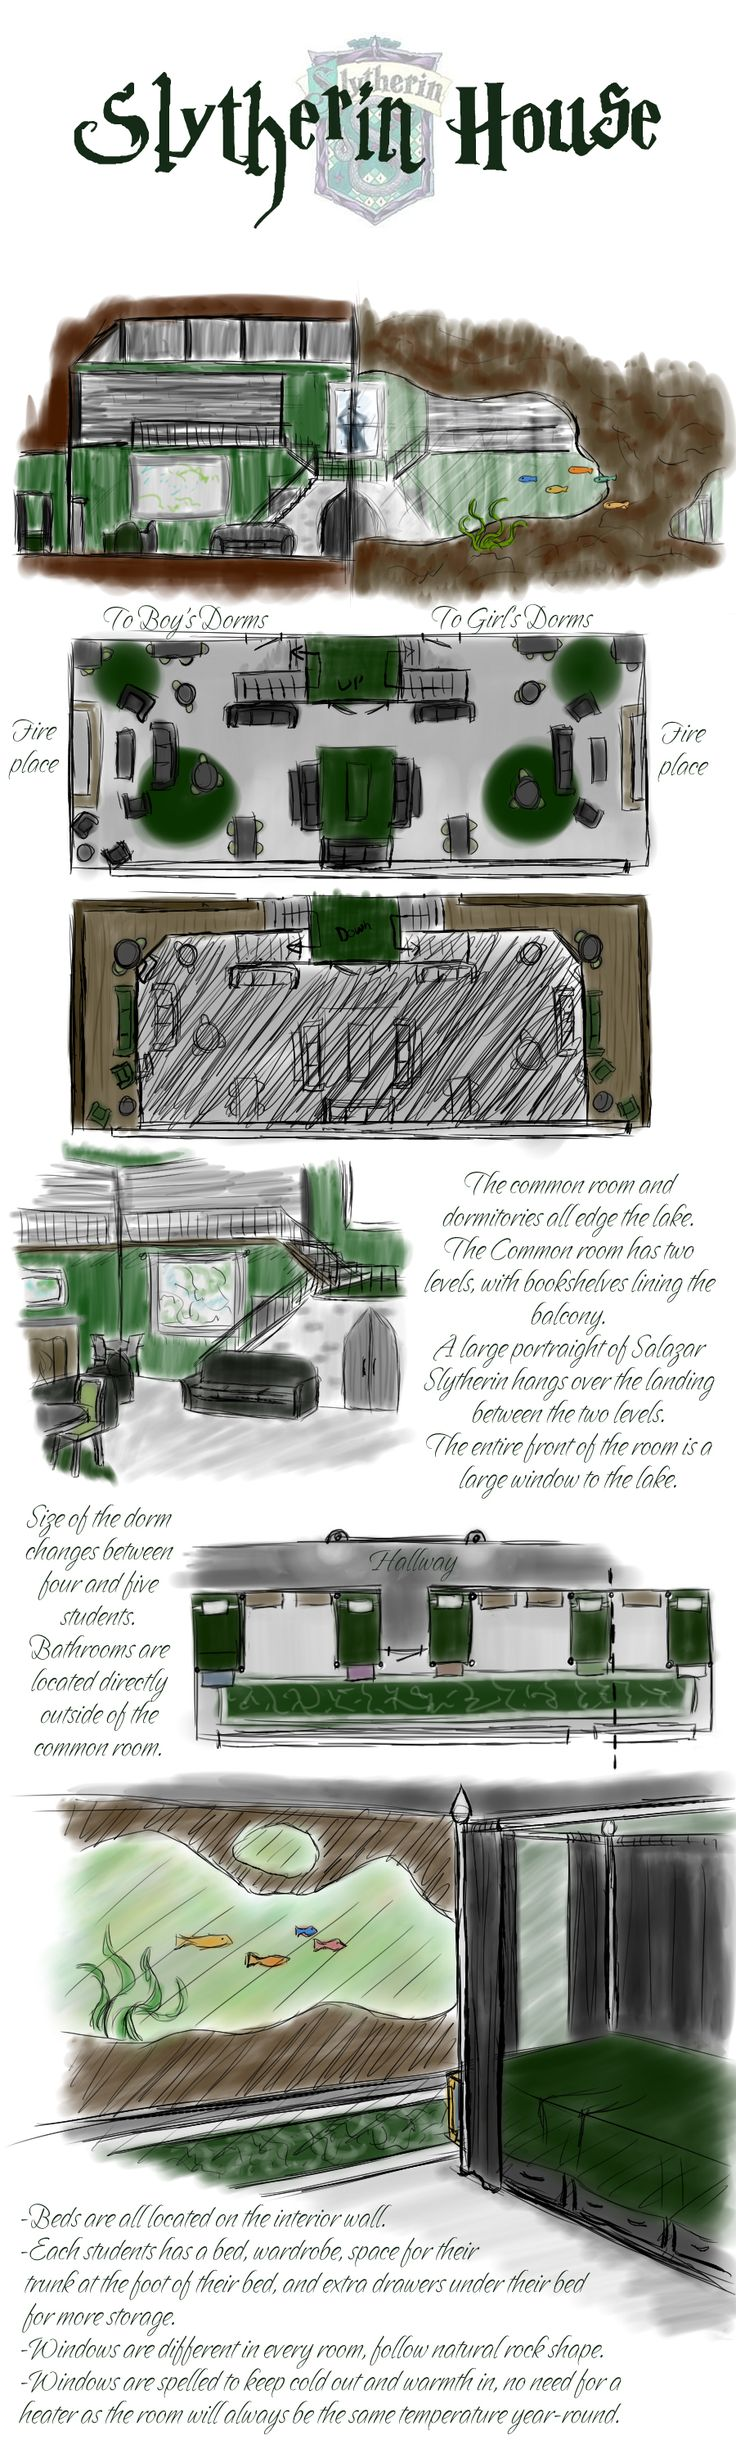 Slytherin House by *Whisperwings on deviantART